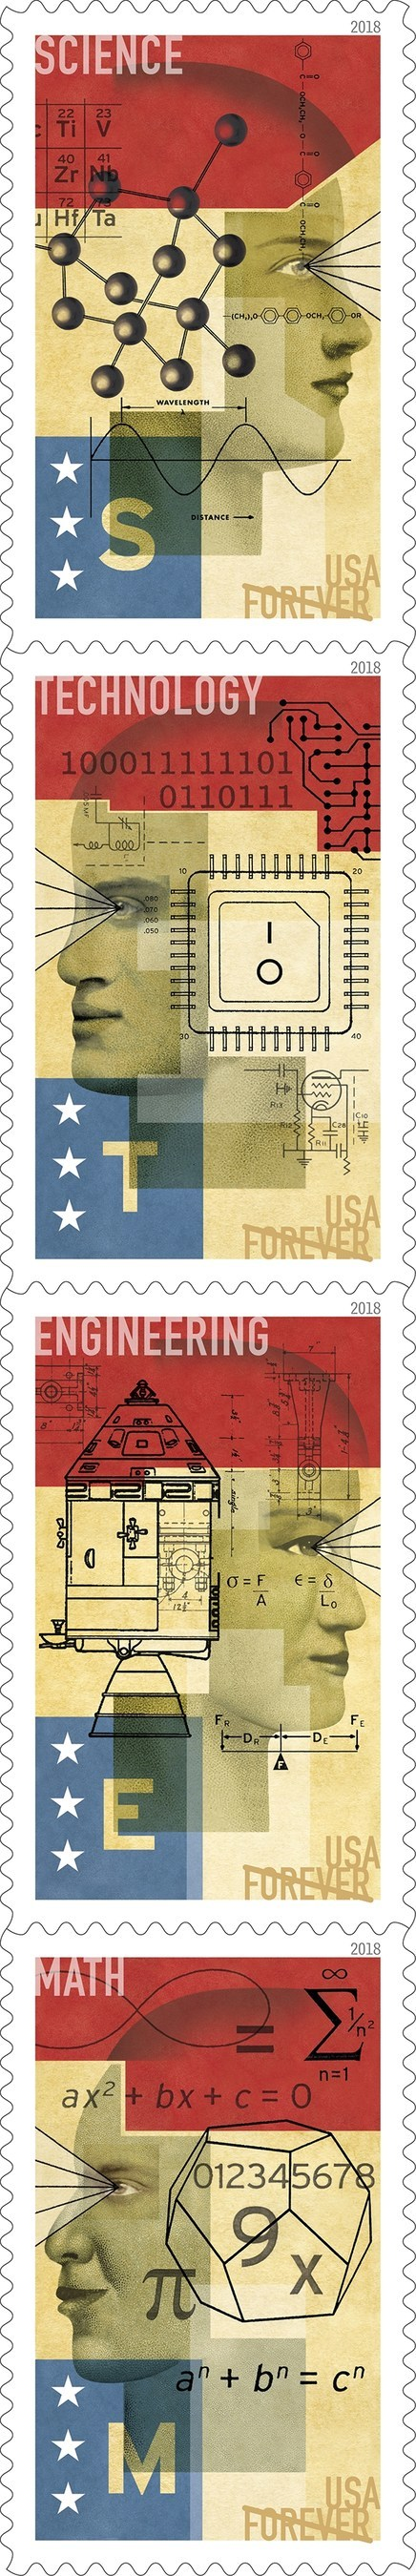 Designs of the STEM Education Forever stamps issued today by the Postal Service.